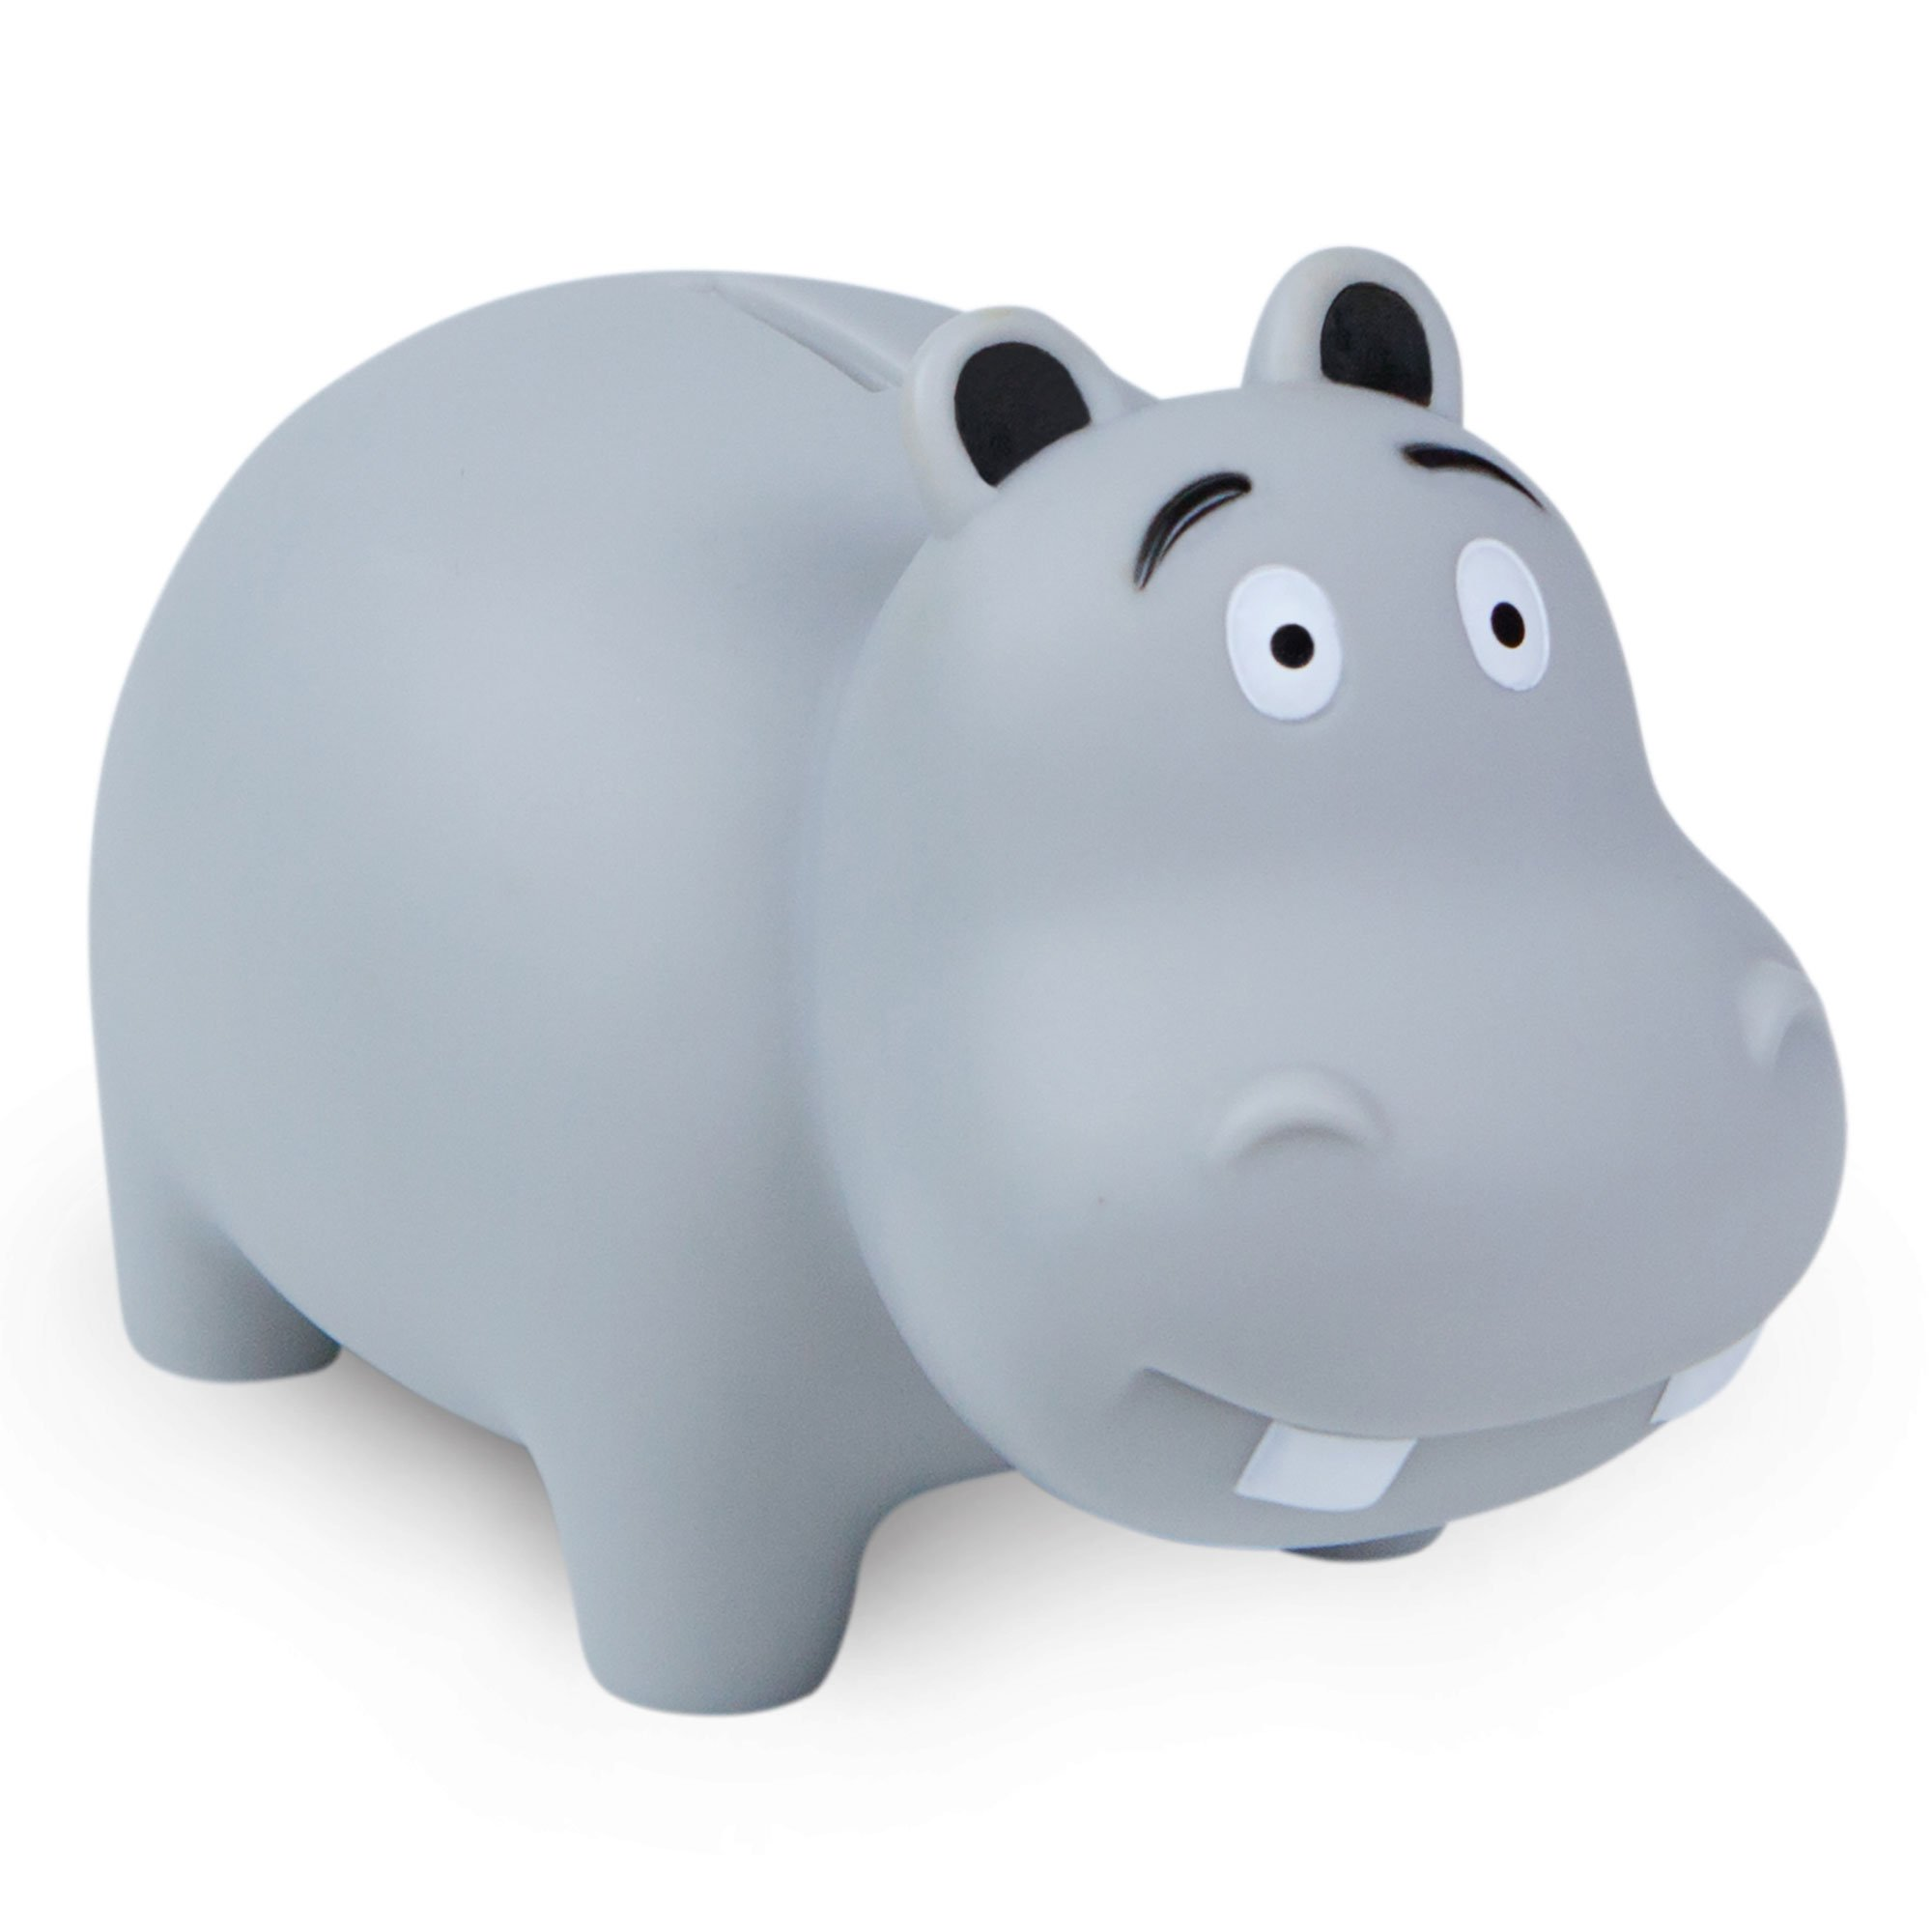 WADDLE Cute Hippo Popular Animal Unisex Piggy Bank Durable Drop Resistant Money Coin Holder for Kids, Babies, Infants, and Toddlers Grey (Gray) | Favorite Unique Gift Idea